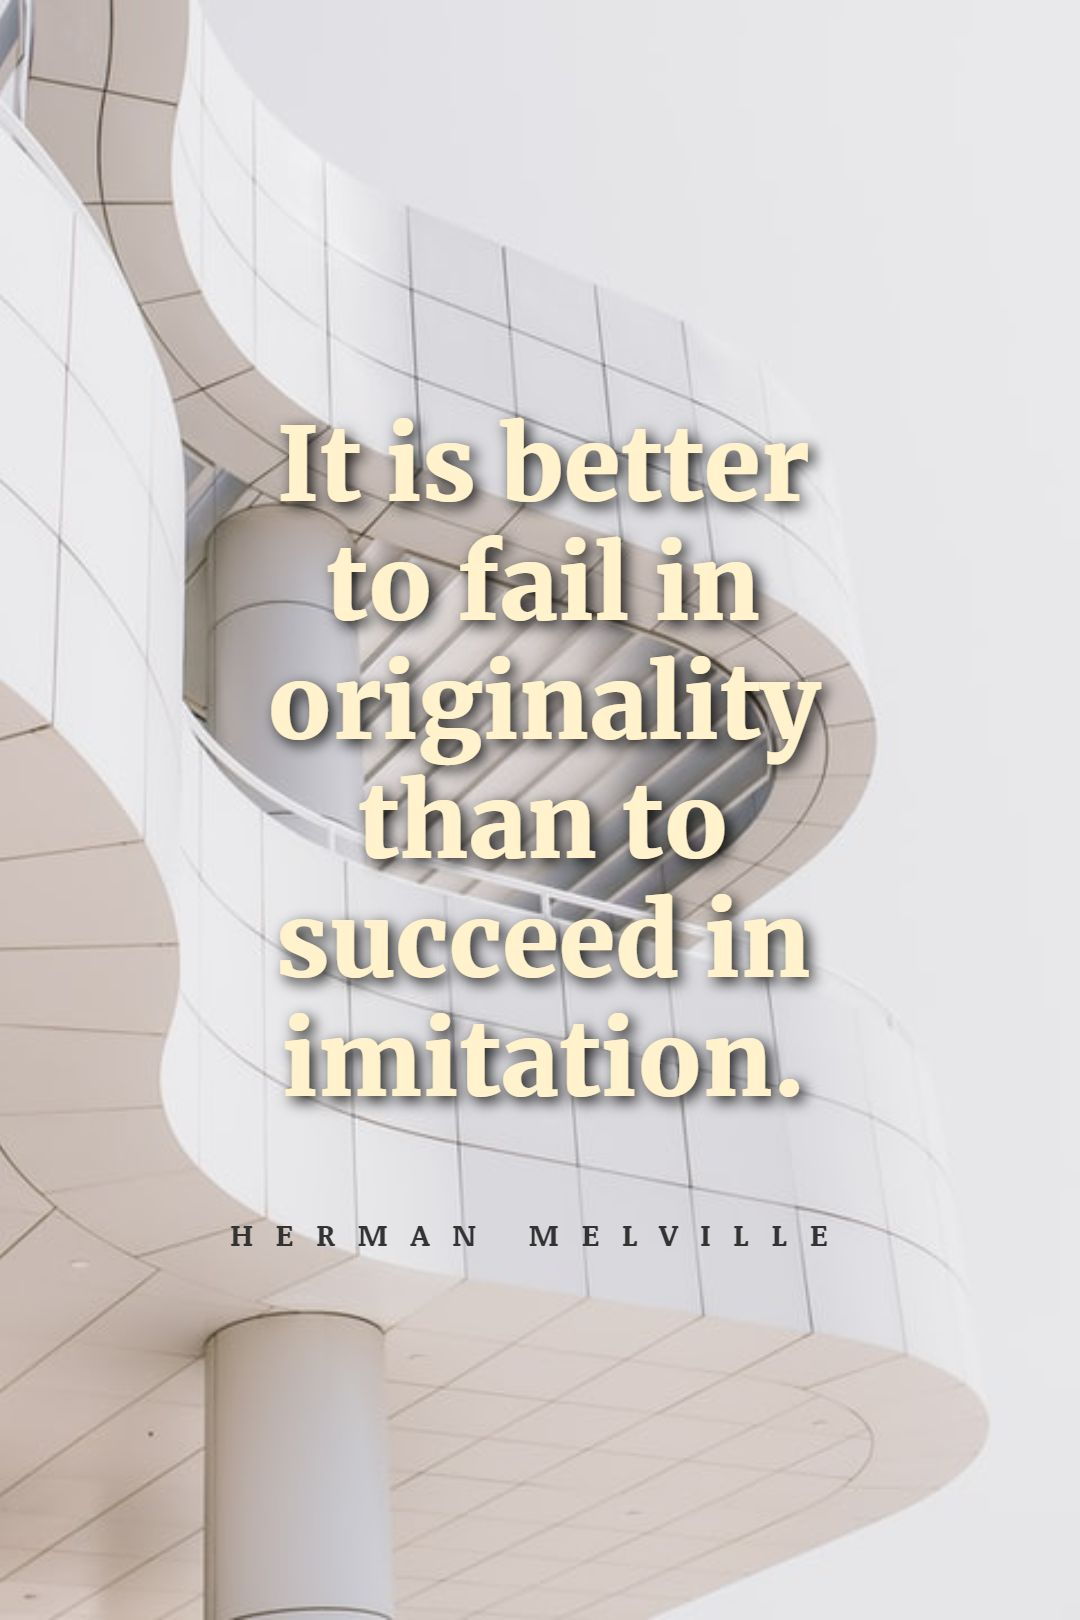 Quotes image of It is better to fail in originality than to succeed in imitation.